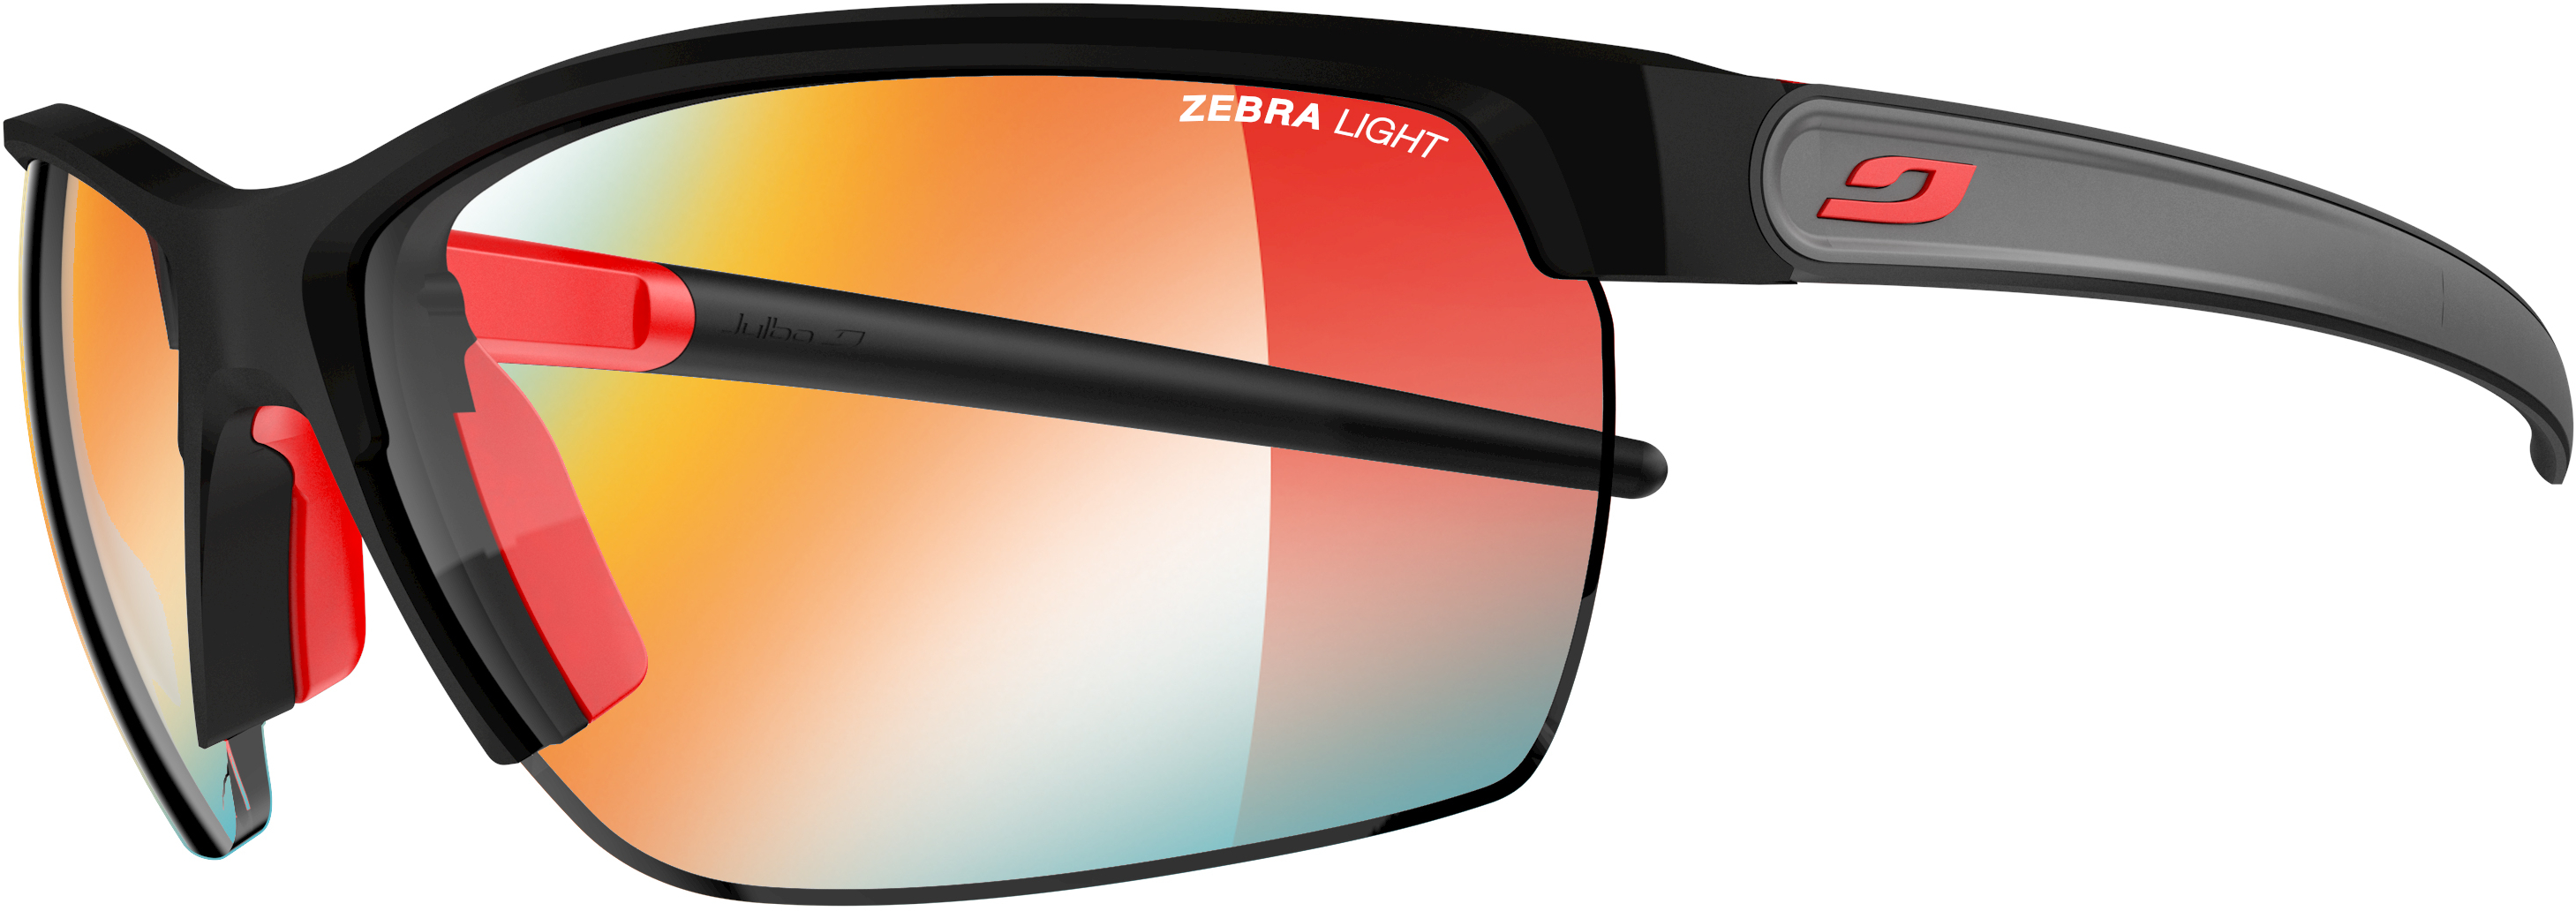 Julbo Zephyr Zebra Light Fire Lens Sunglasses Black/red